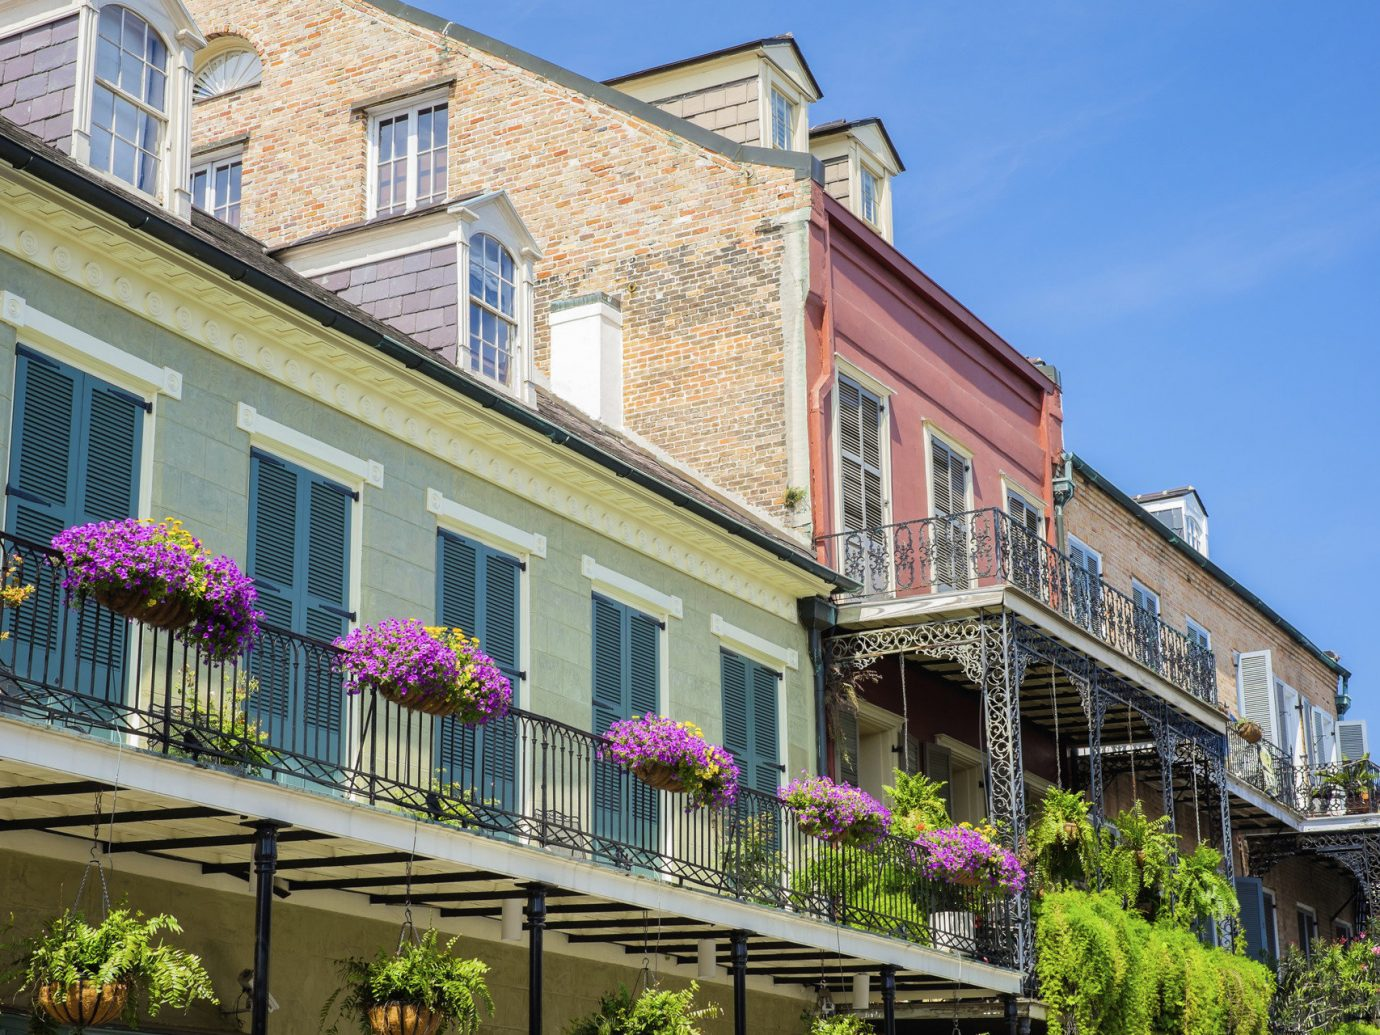 Houses in the French Quarter in New Orleans